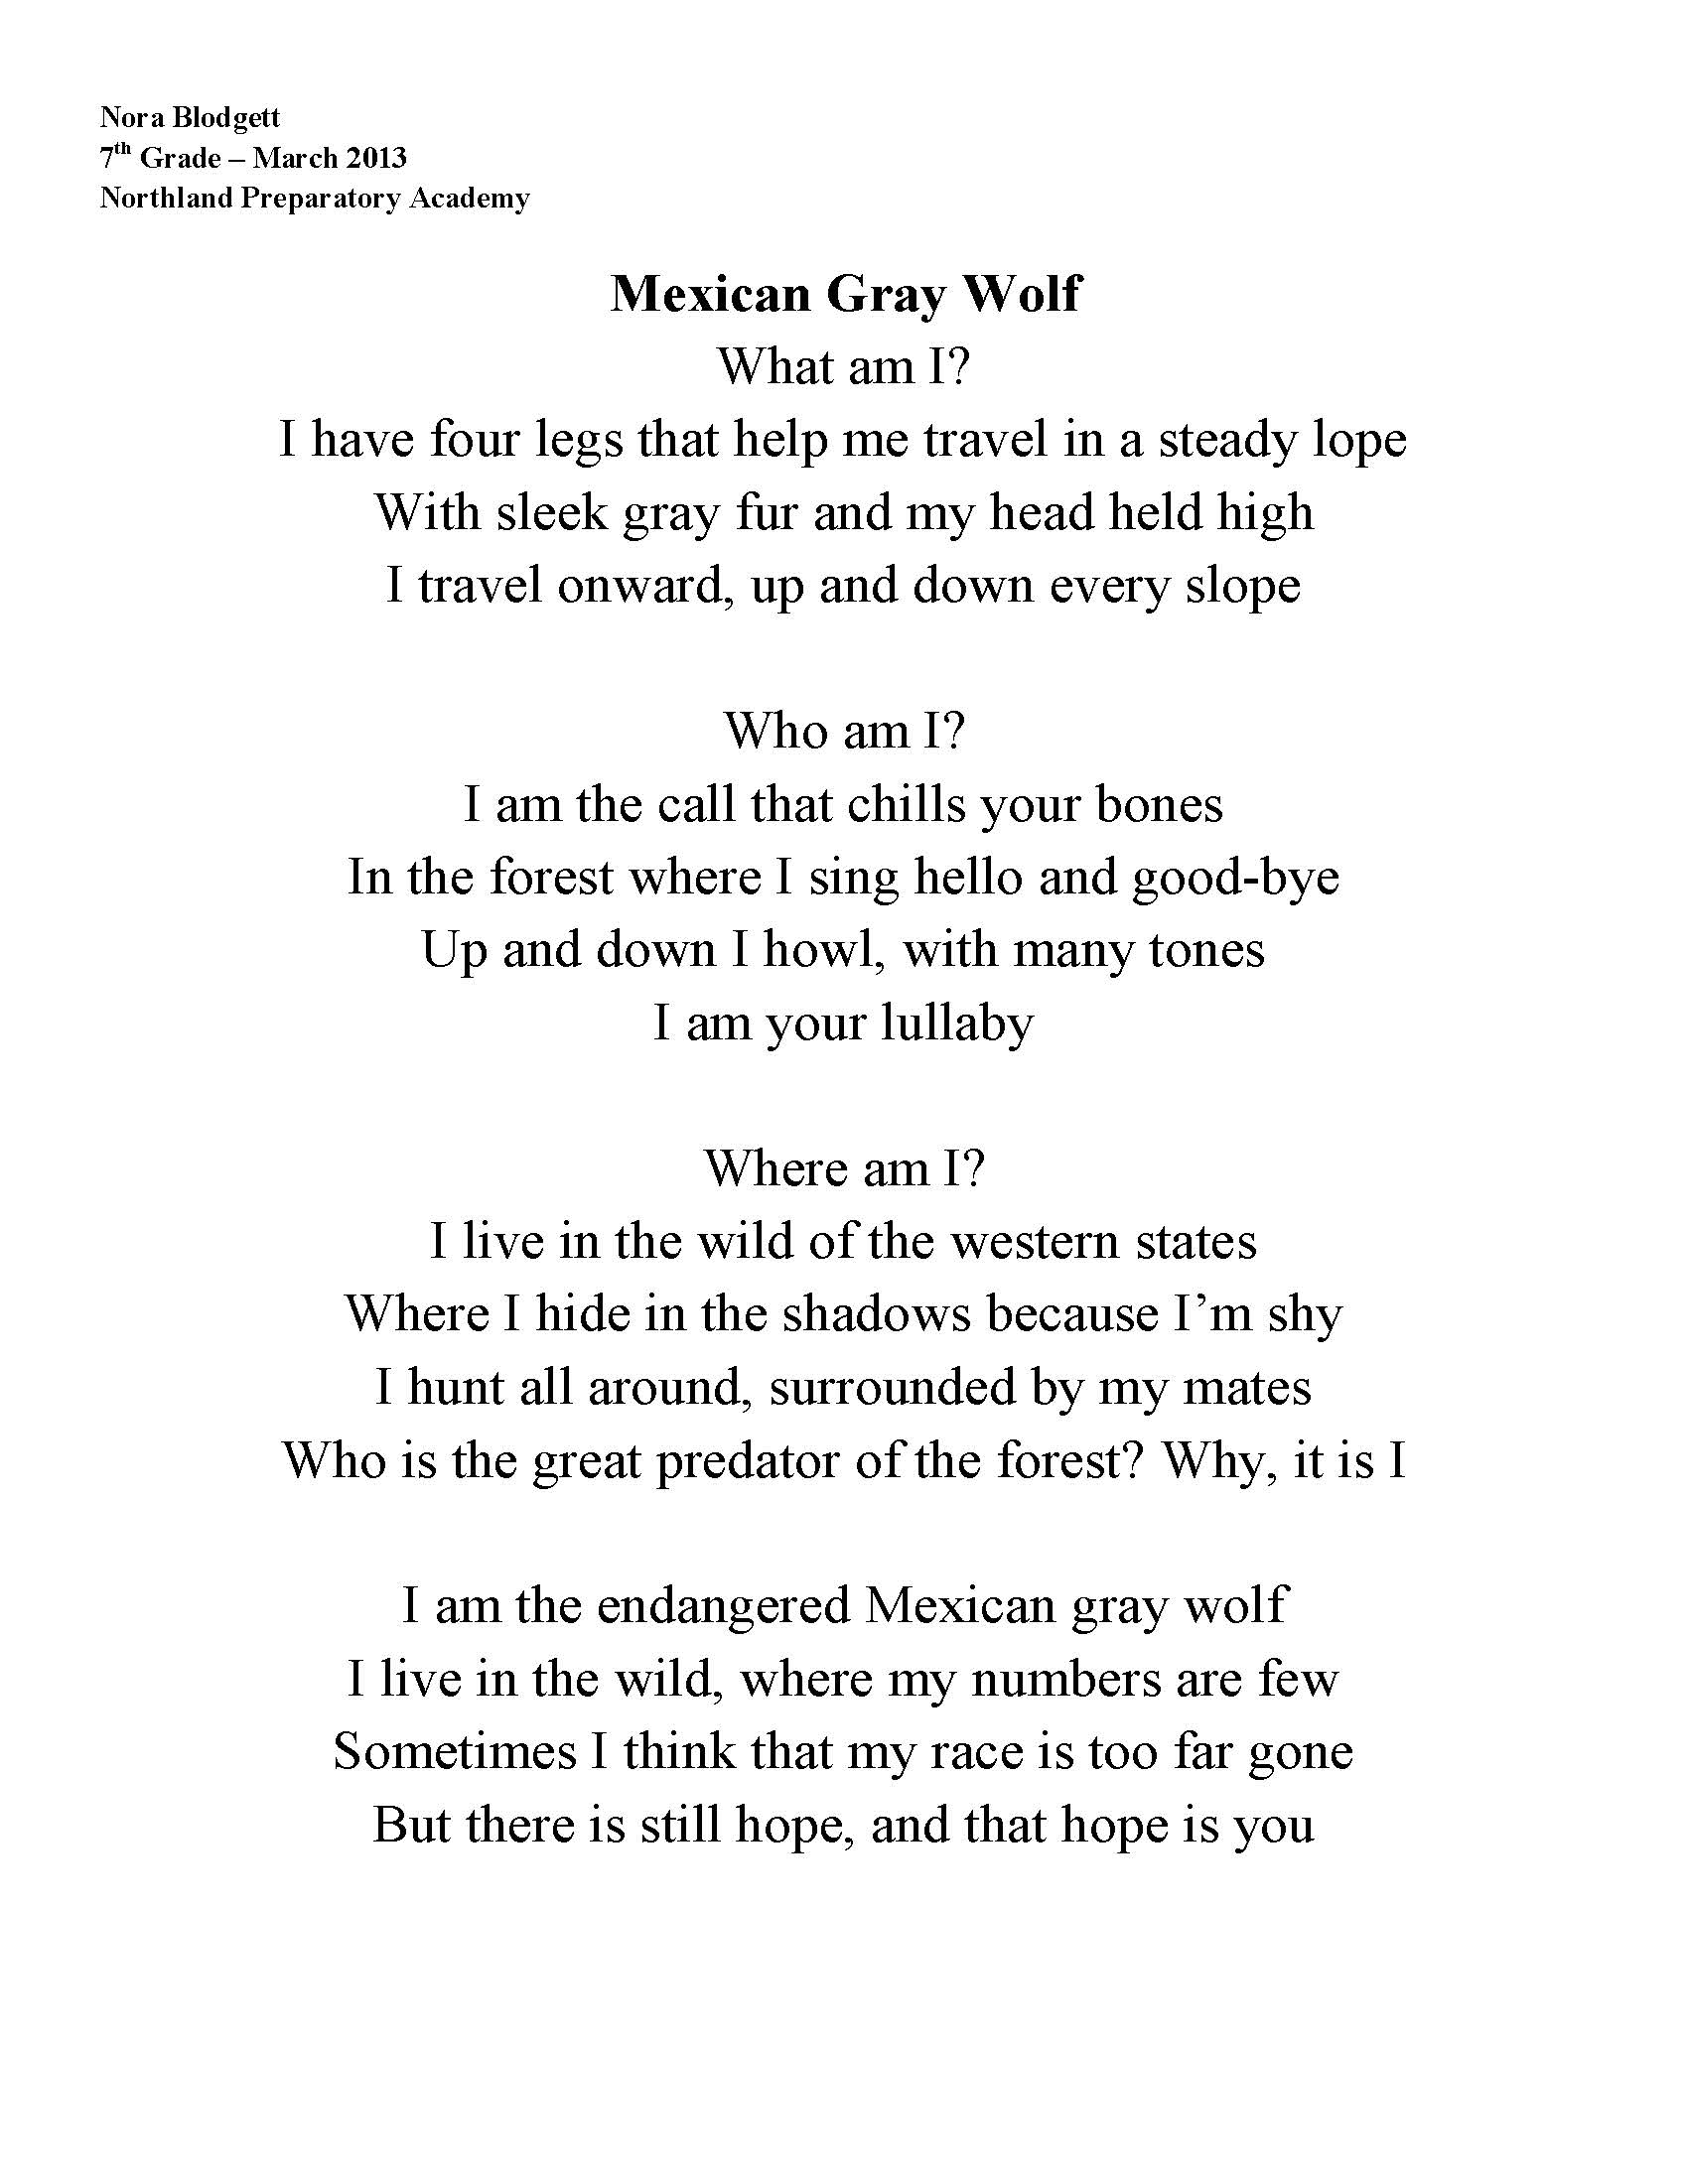 Mexican gray wolf poem by Nora Blodgett